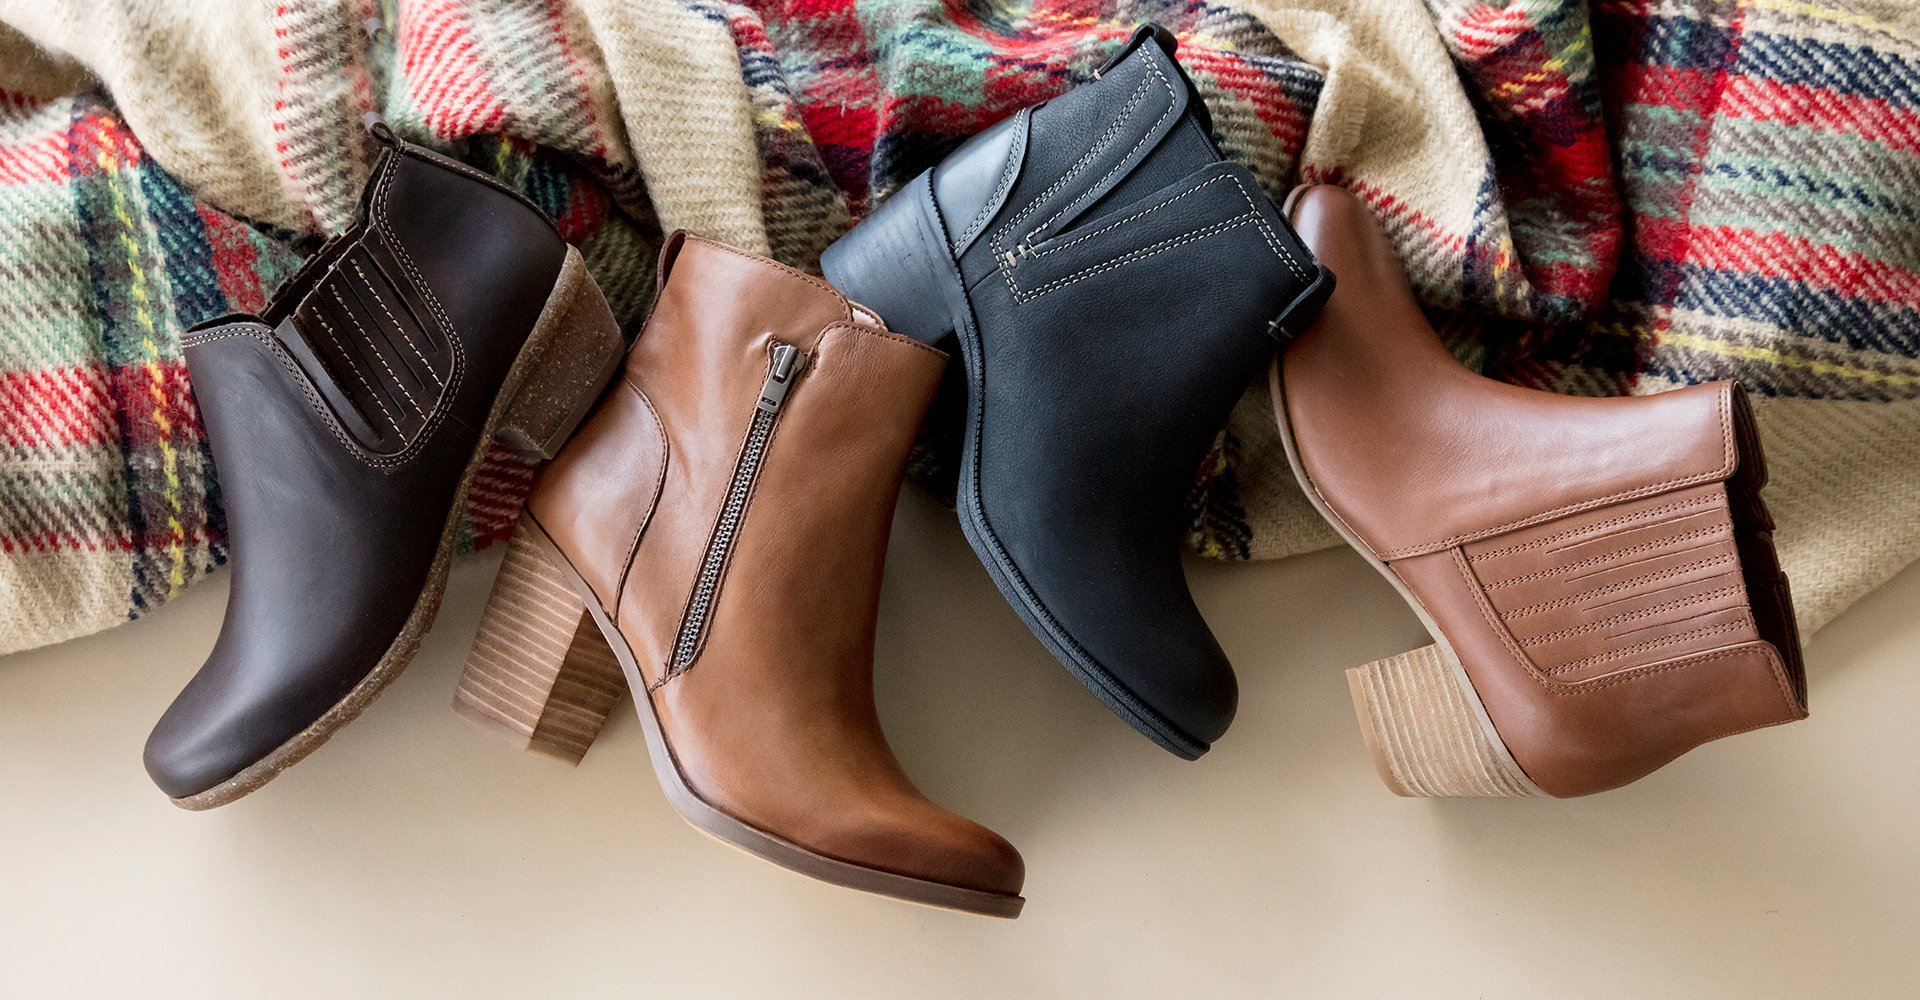 Image of comfort booties